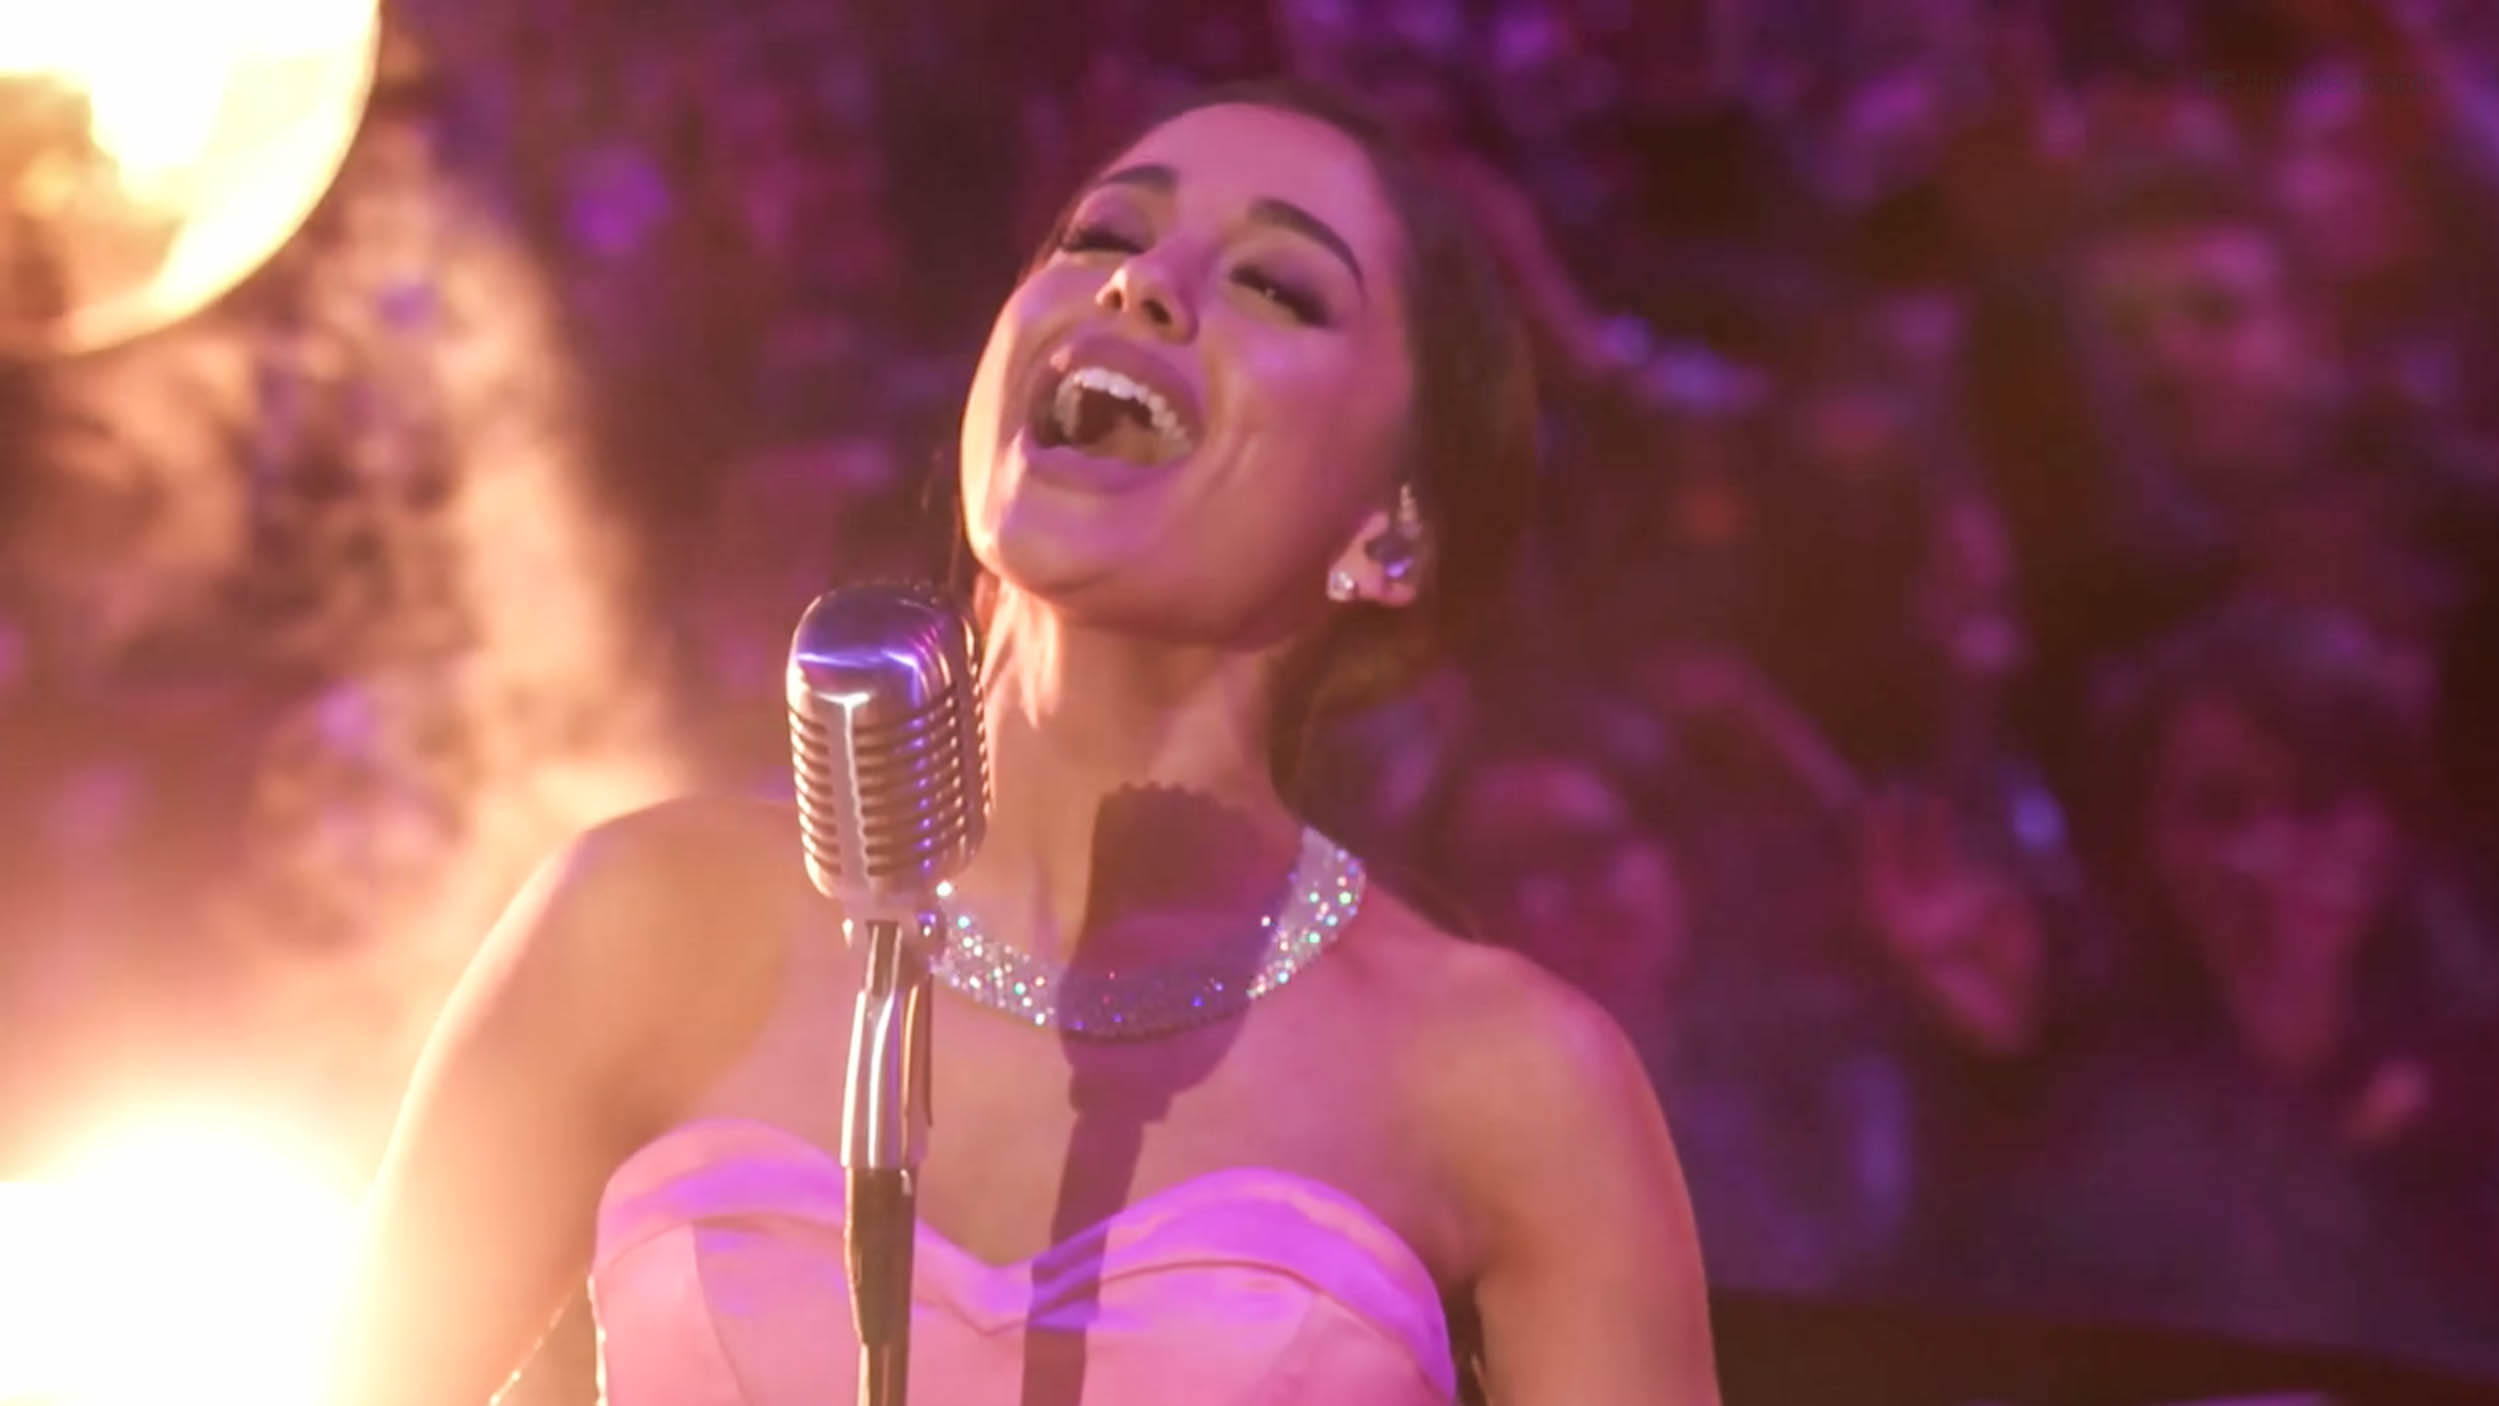 WATCH: Ariana Grande performs 'Dangerous Woman' at the 2016 MTV Movie Awards